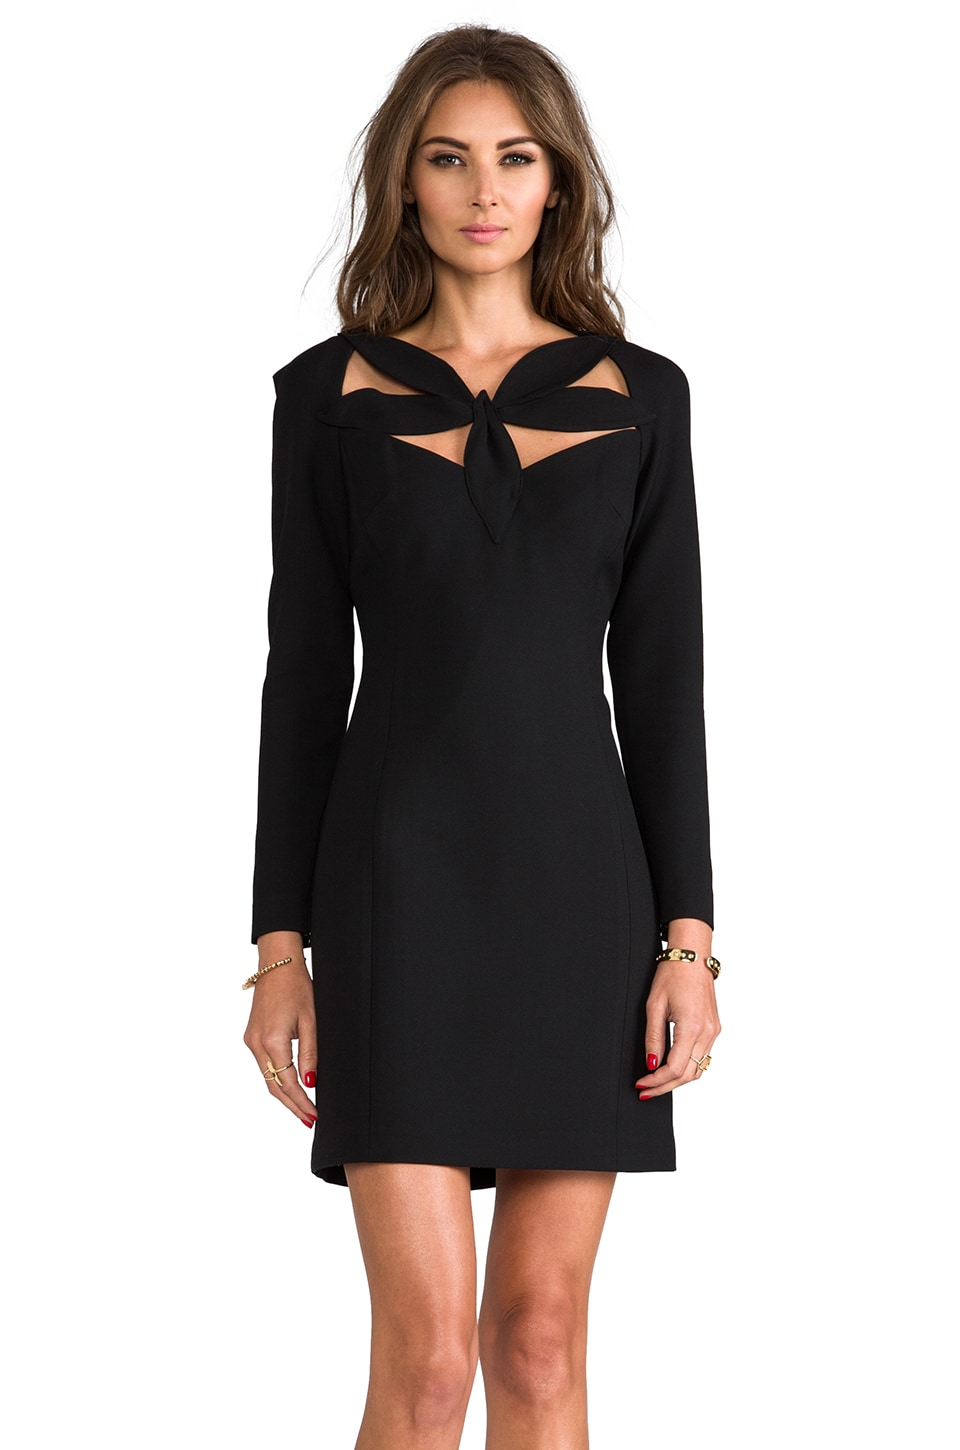 MILLY RUNWAY Stretch Doubleweave Neckline Detail Dress in Black